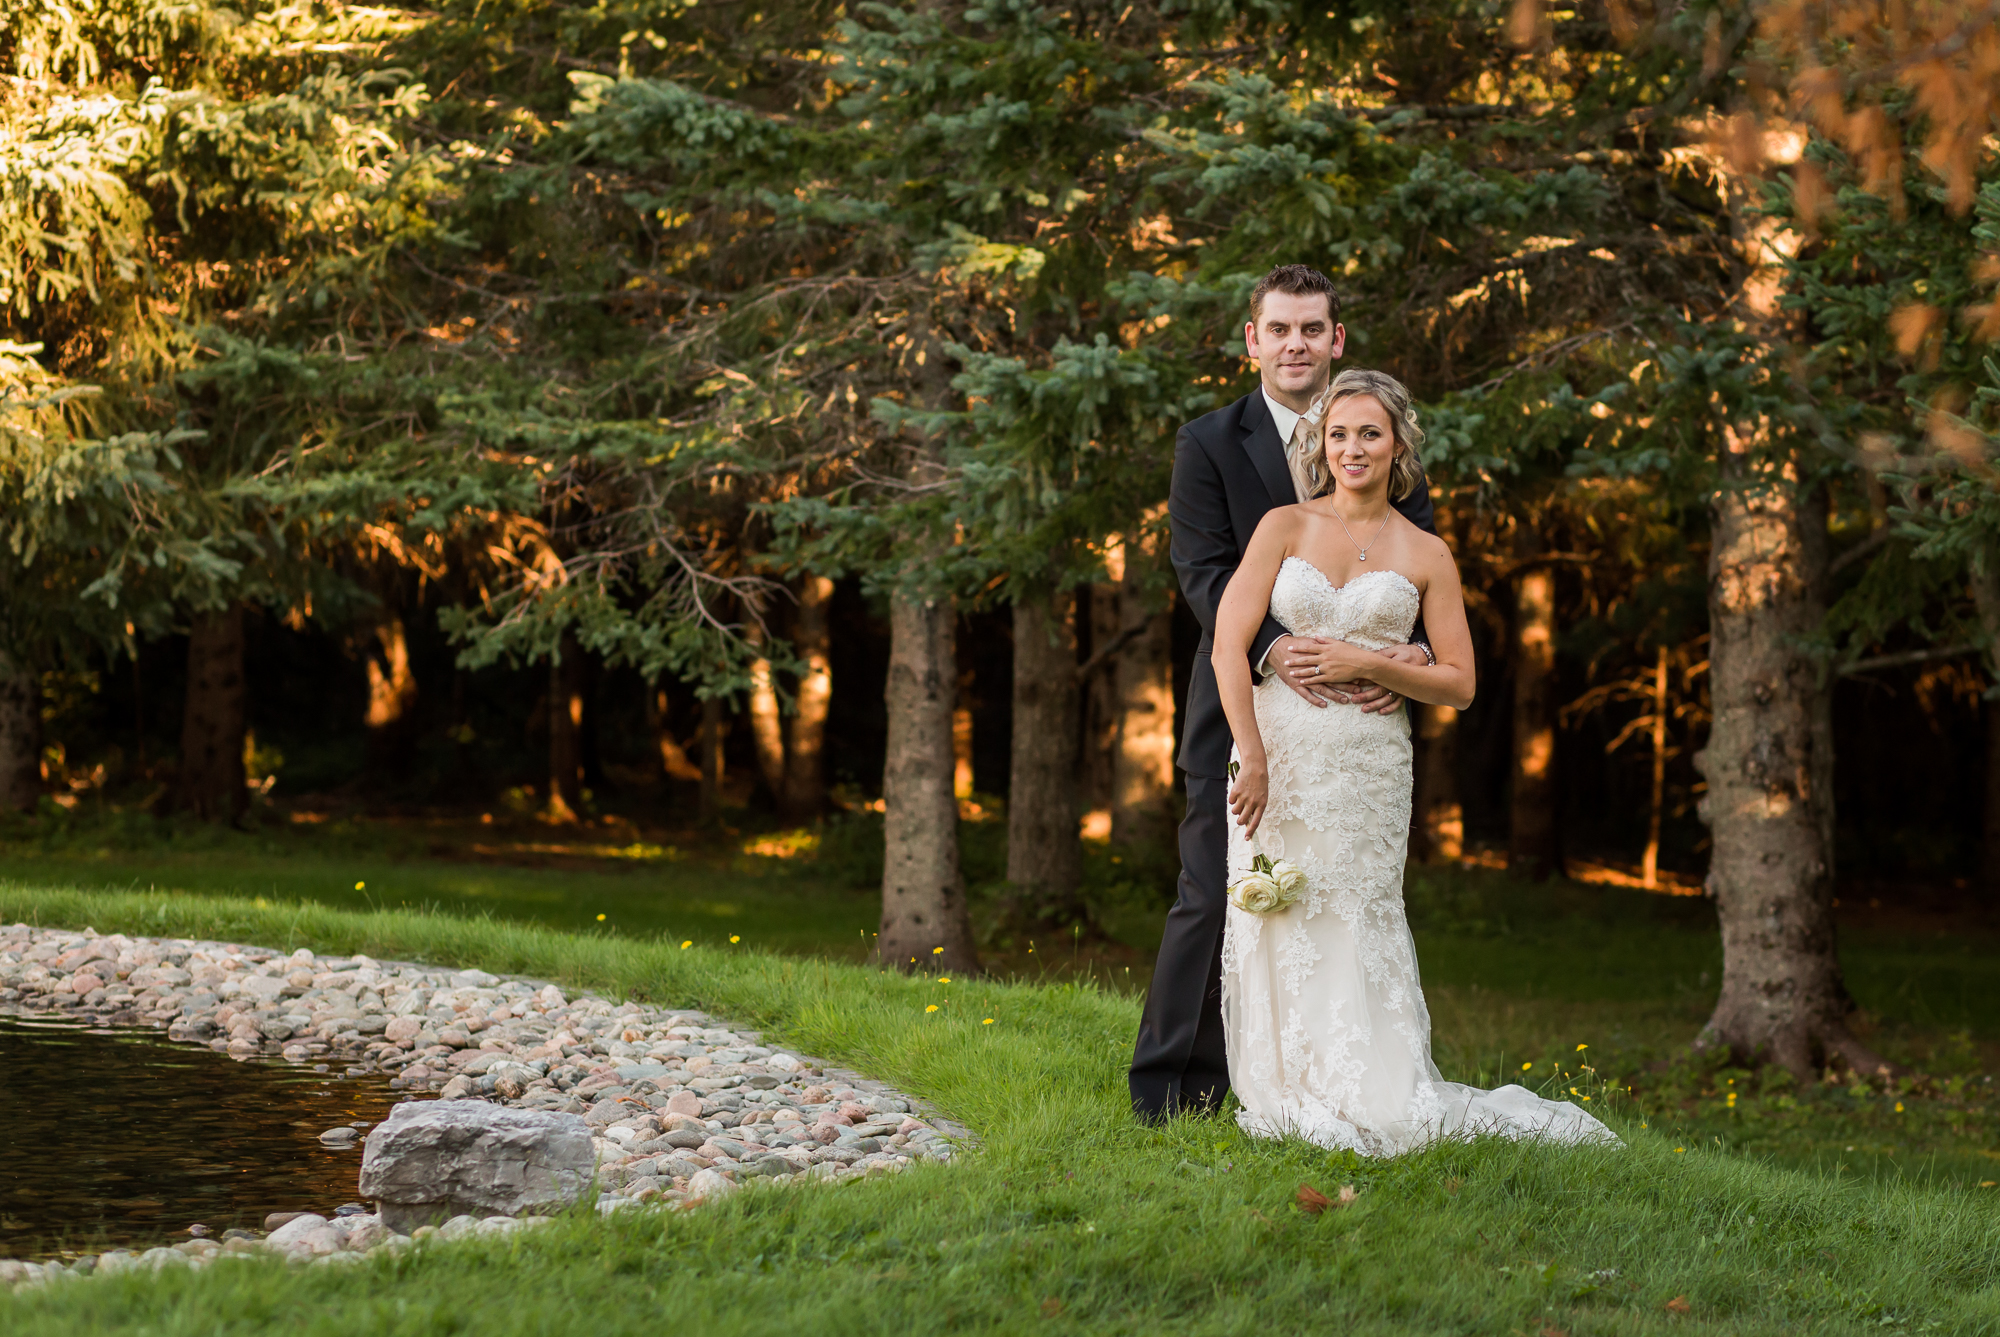 moncton wedding  photographer Tara Geldart-393.JPG